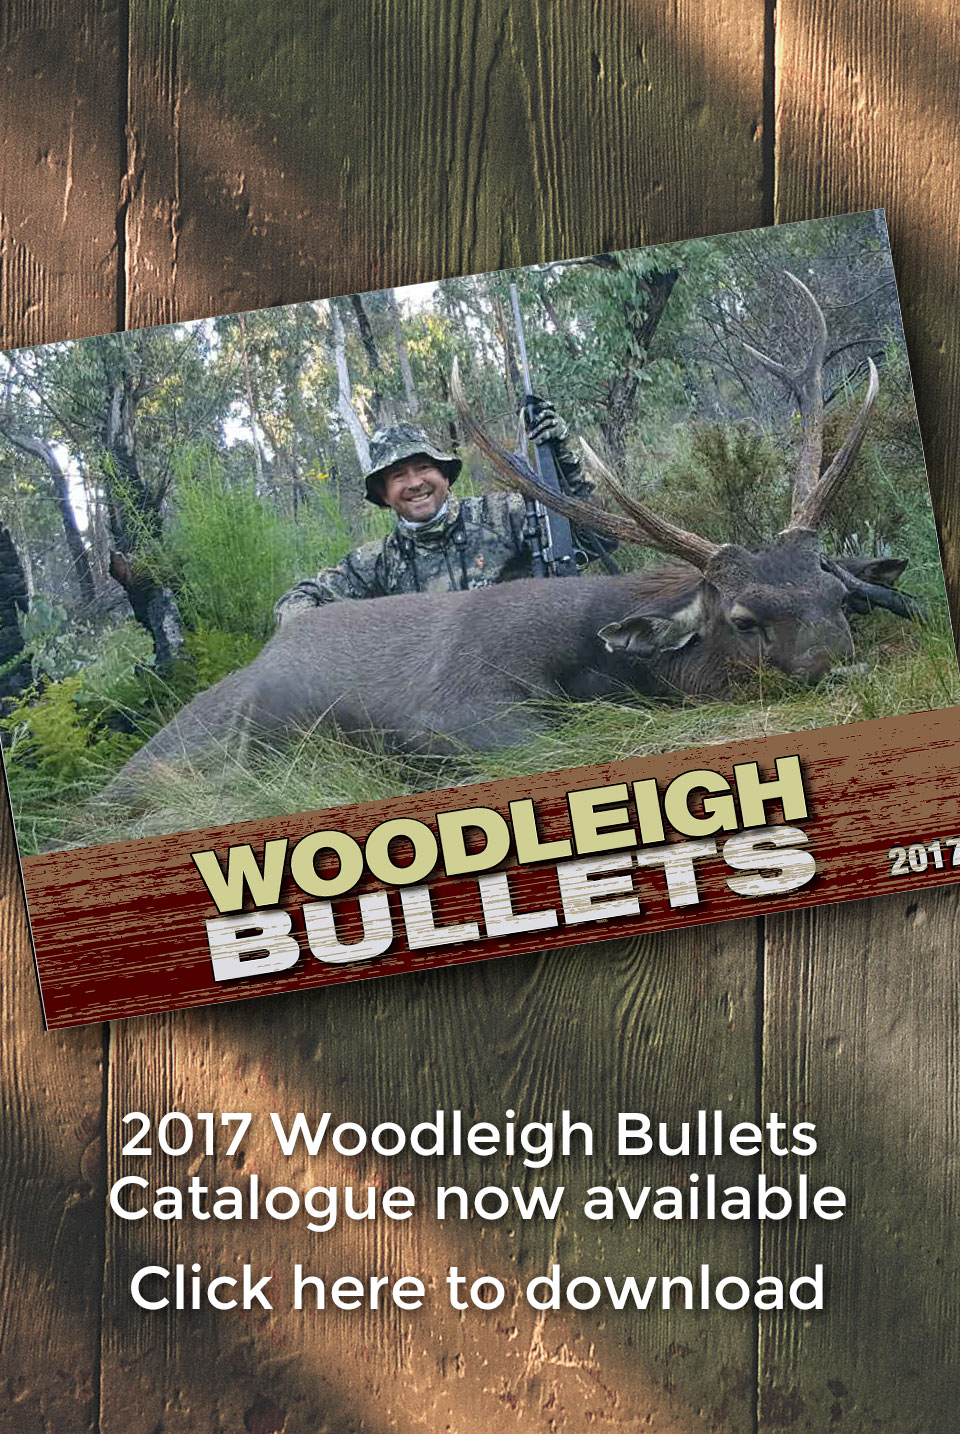 Woodleigh Bullets 2017 Catalogue